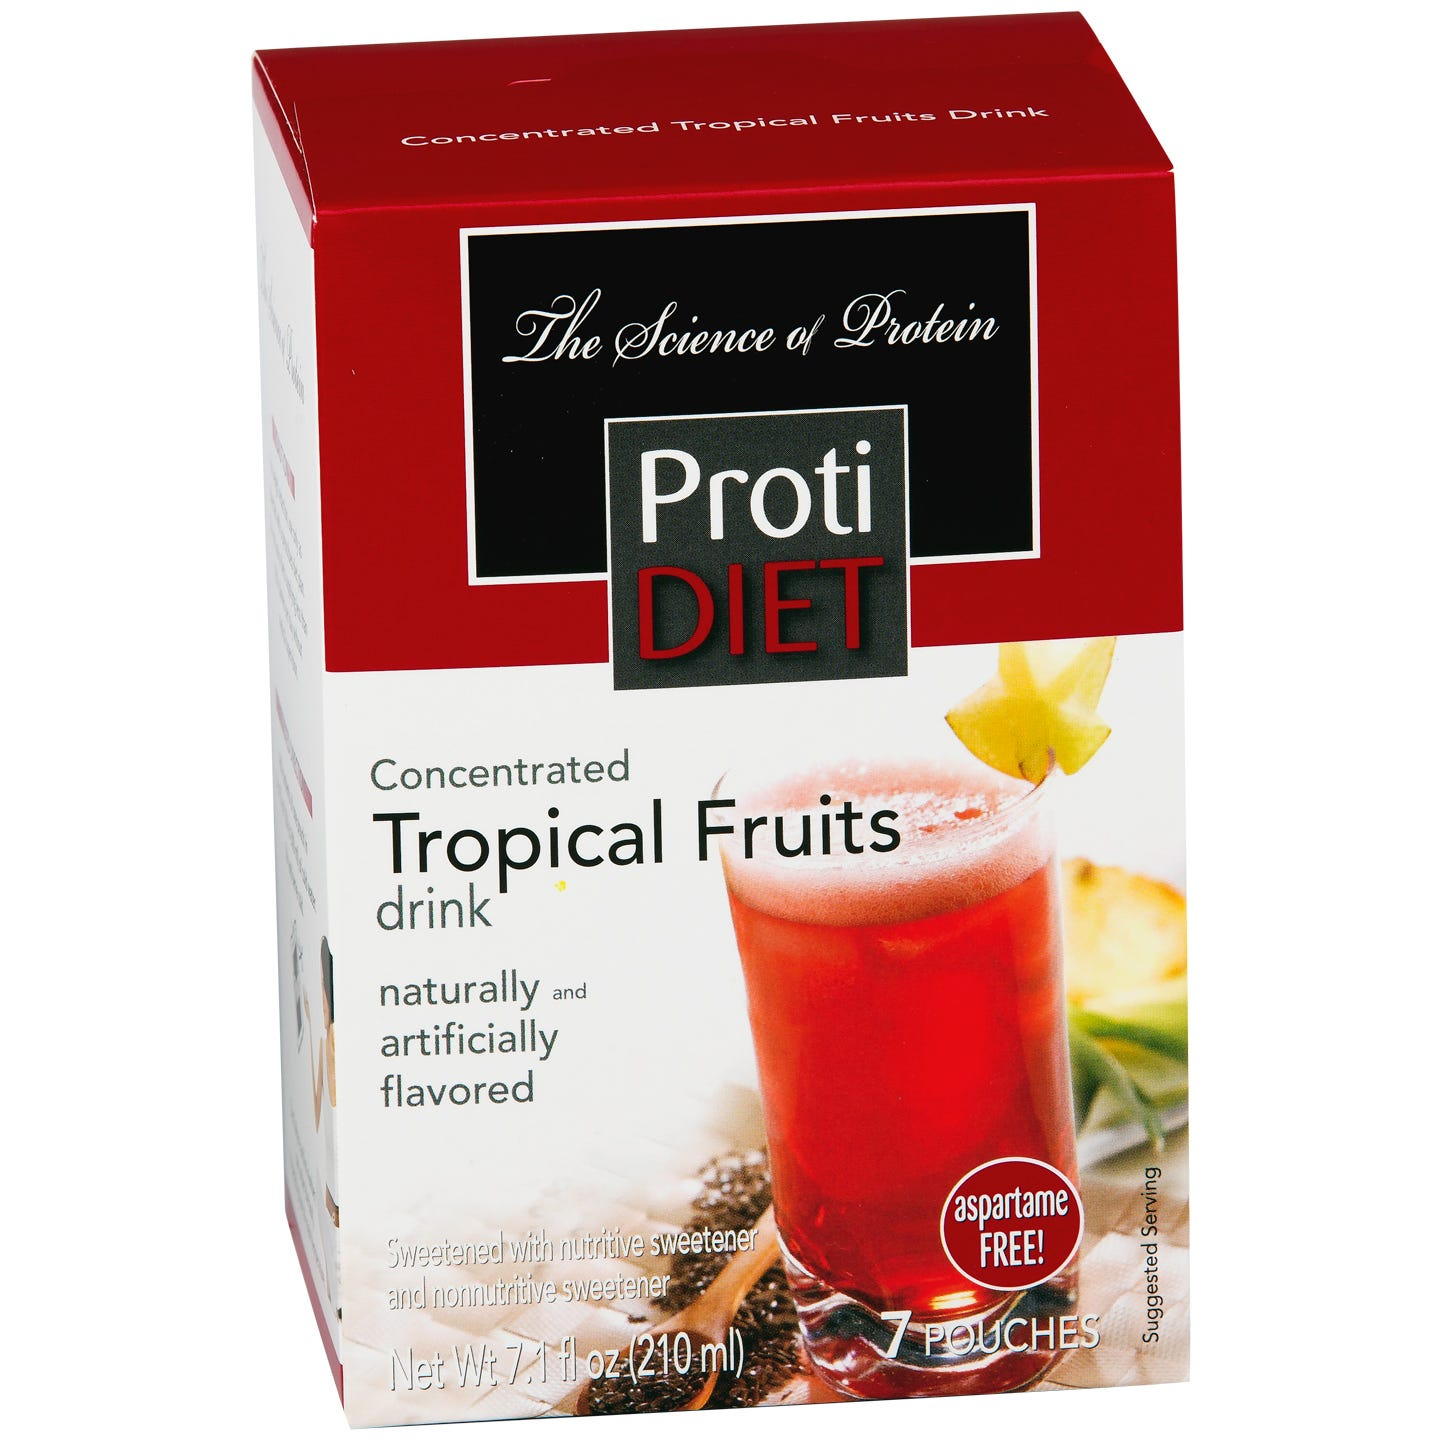 Protein Fruit Drink Concentrate Tropical Fruits (7 ct) - ProtiDiet - Rapid Diet Weight Loss Products Shop